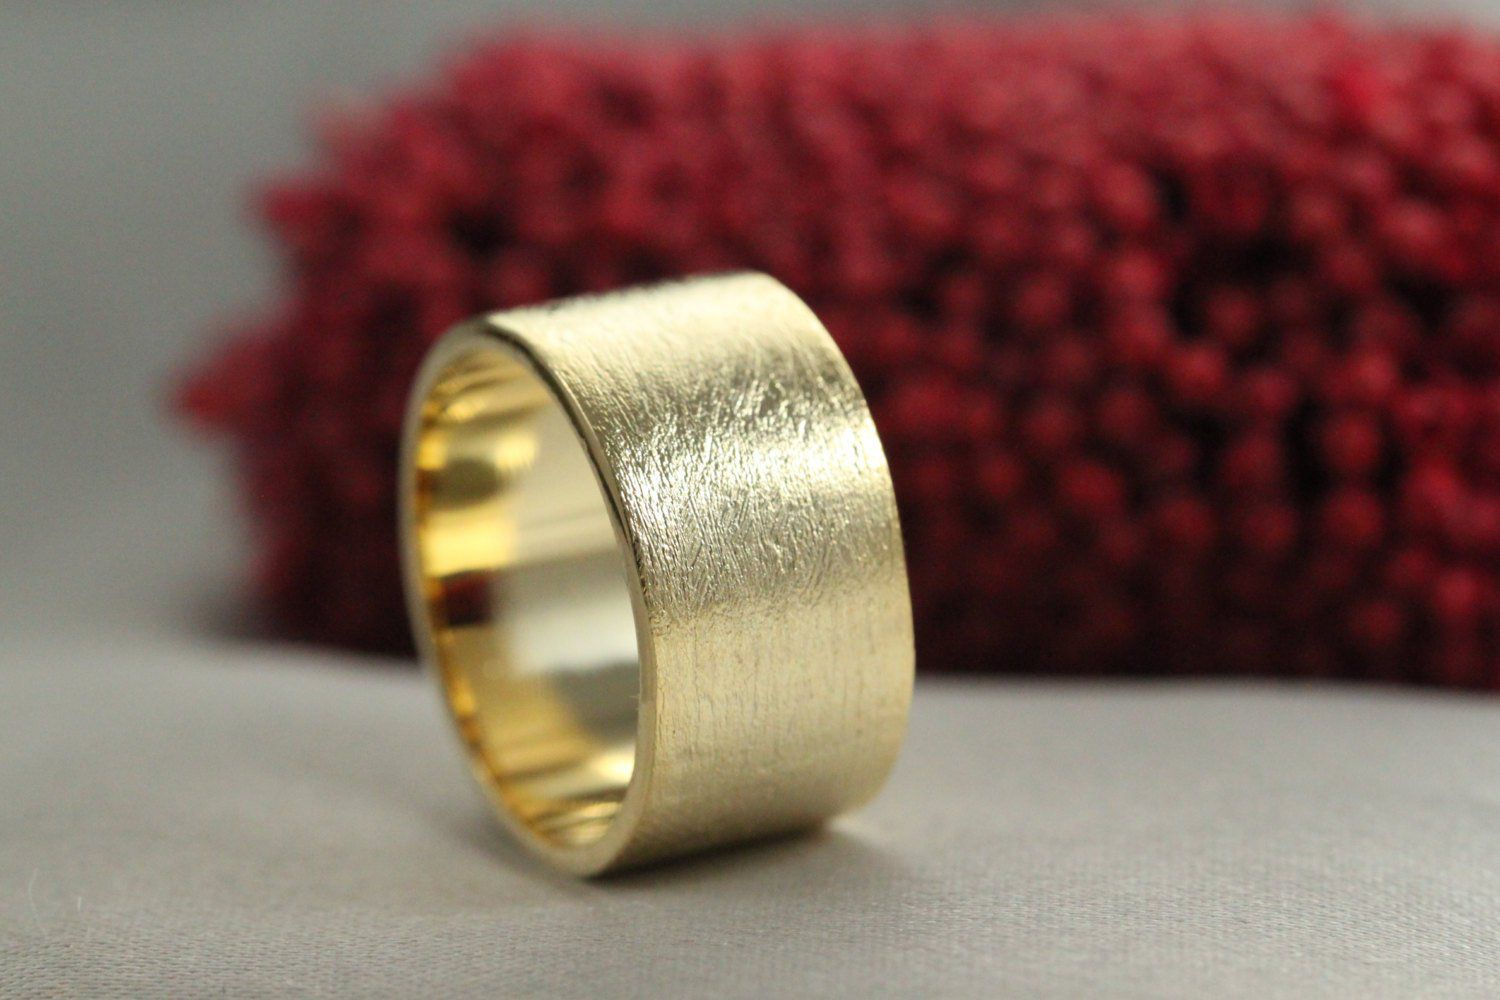 Wedding Band Handmade Wedding Ring Gold Ring 14k Sand Texture Ring 10mm Wide Gold Ring 14k Solid Gold Ring Mens Wedding Ring In 2020 Handmade Wedding Rings Gold Rings Wedding Bands